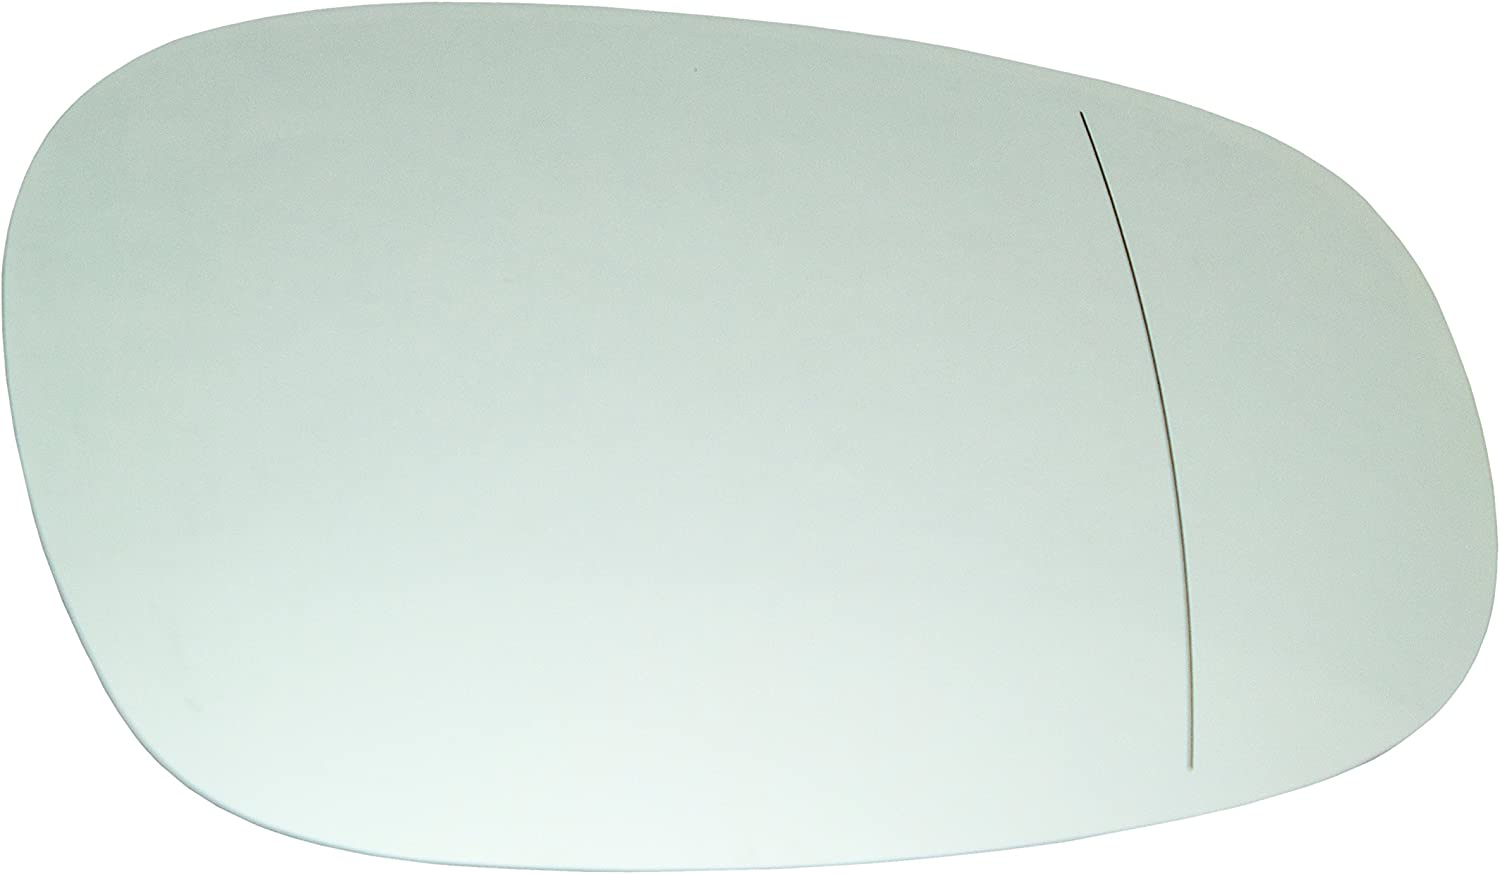 TarosTrade 57-1540-R-71710 Mirror Glass Heated